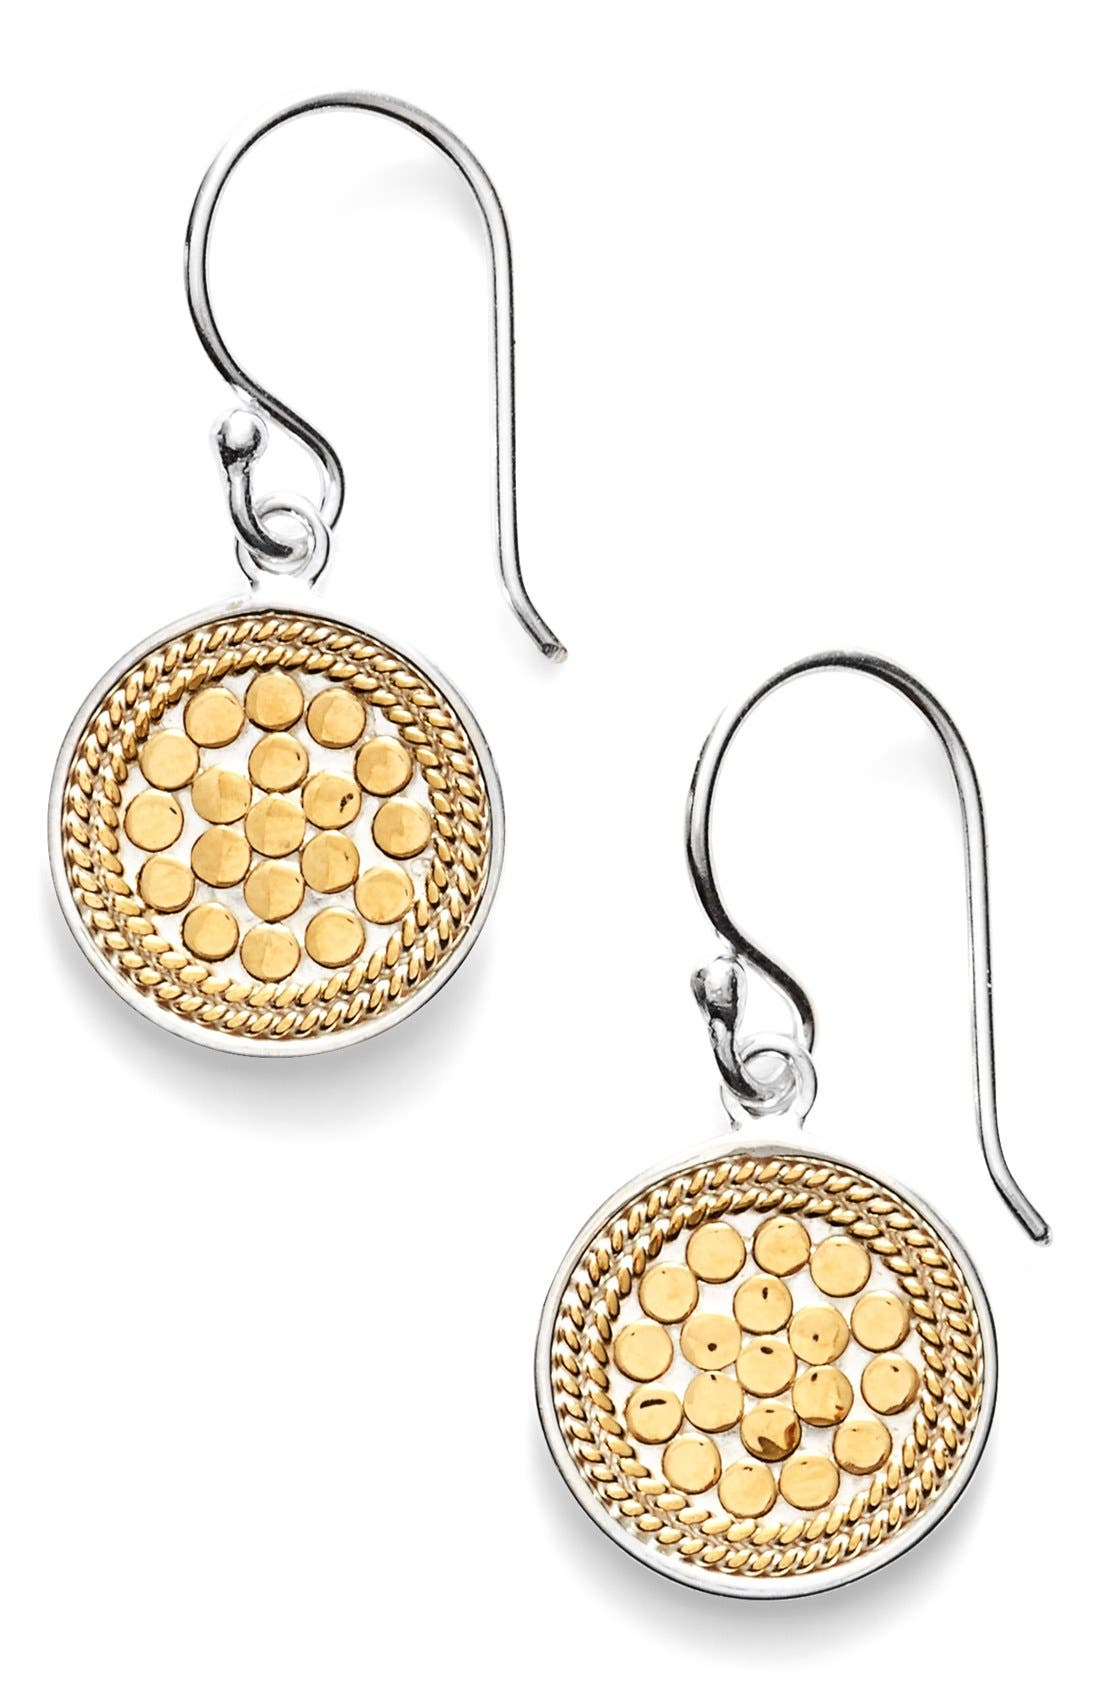 'Gili' Small Drop Earrings,                             Main thumbnail 1, color,                             Gold/ Silver